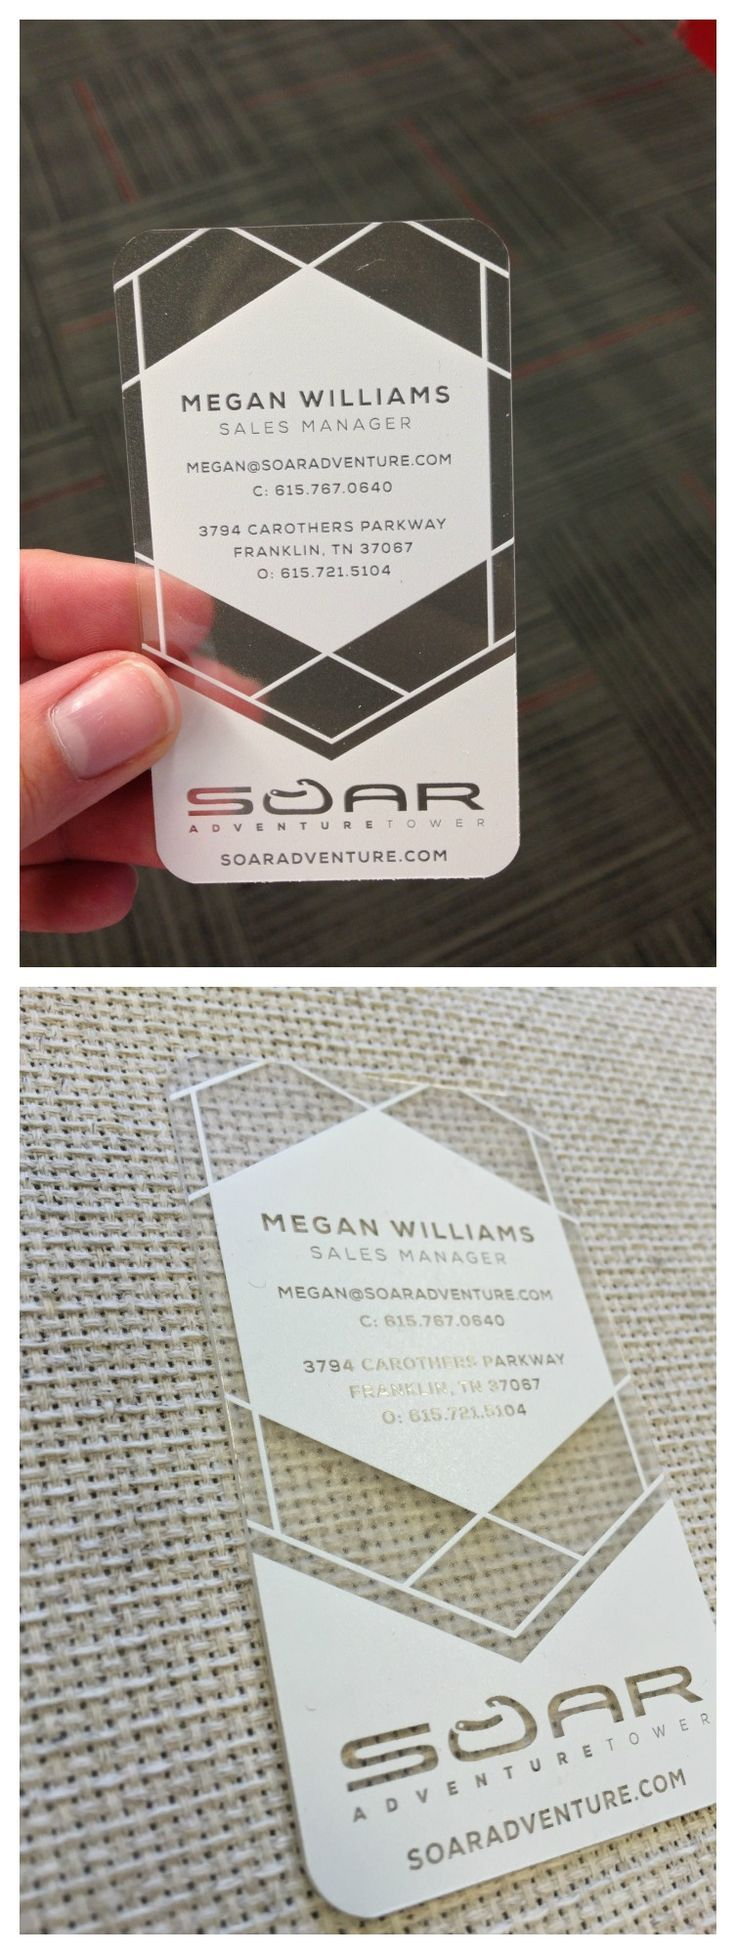 Plastic (acrylic) business cards with white ink